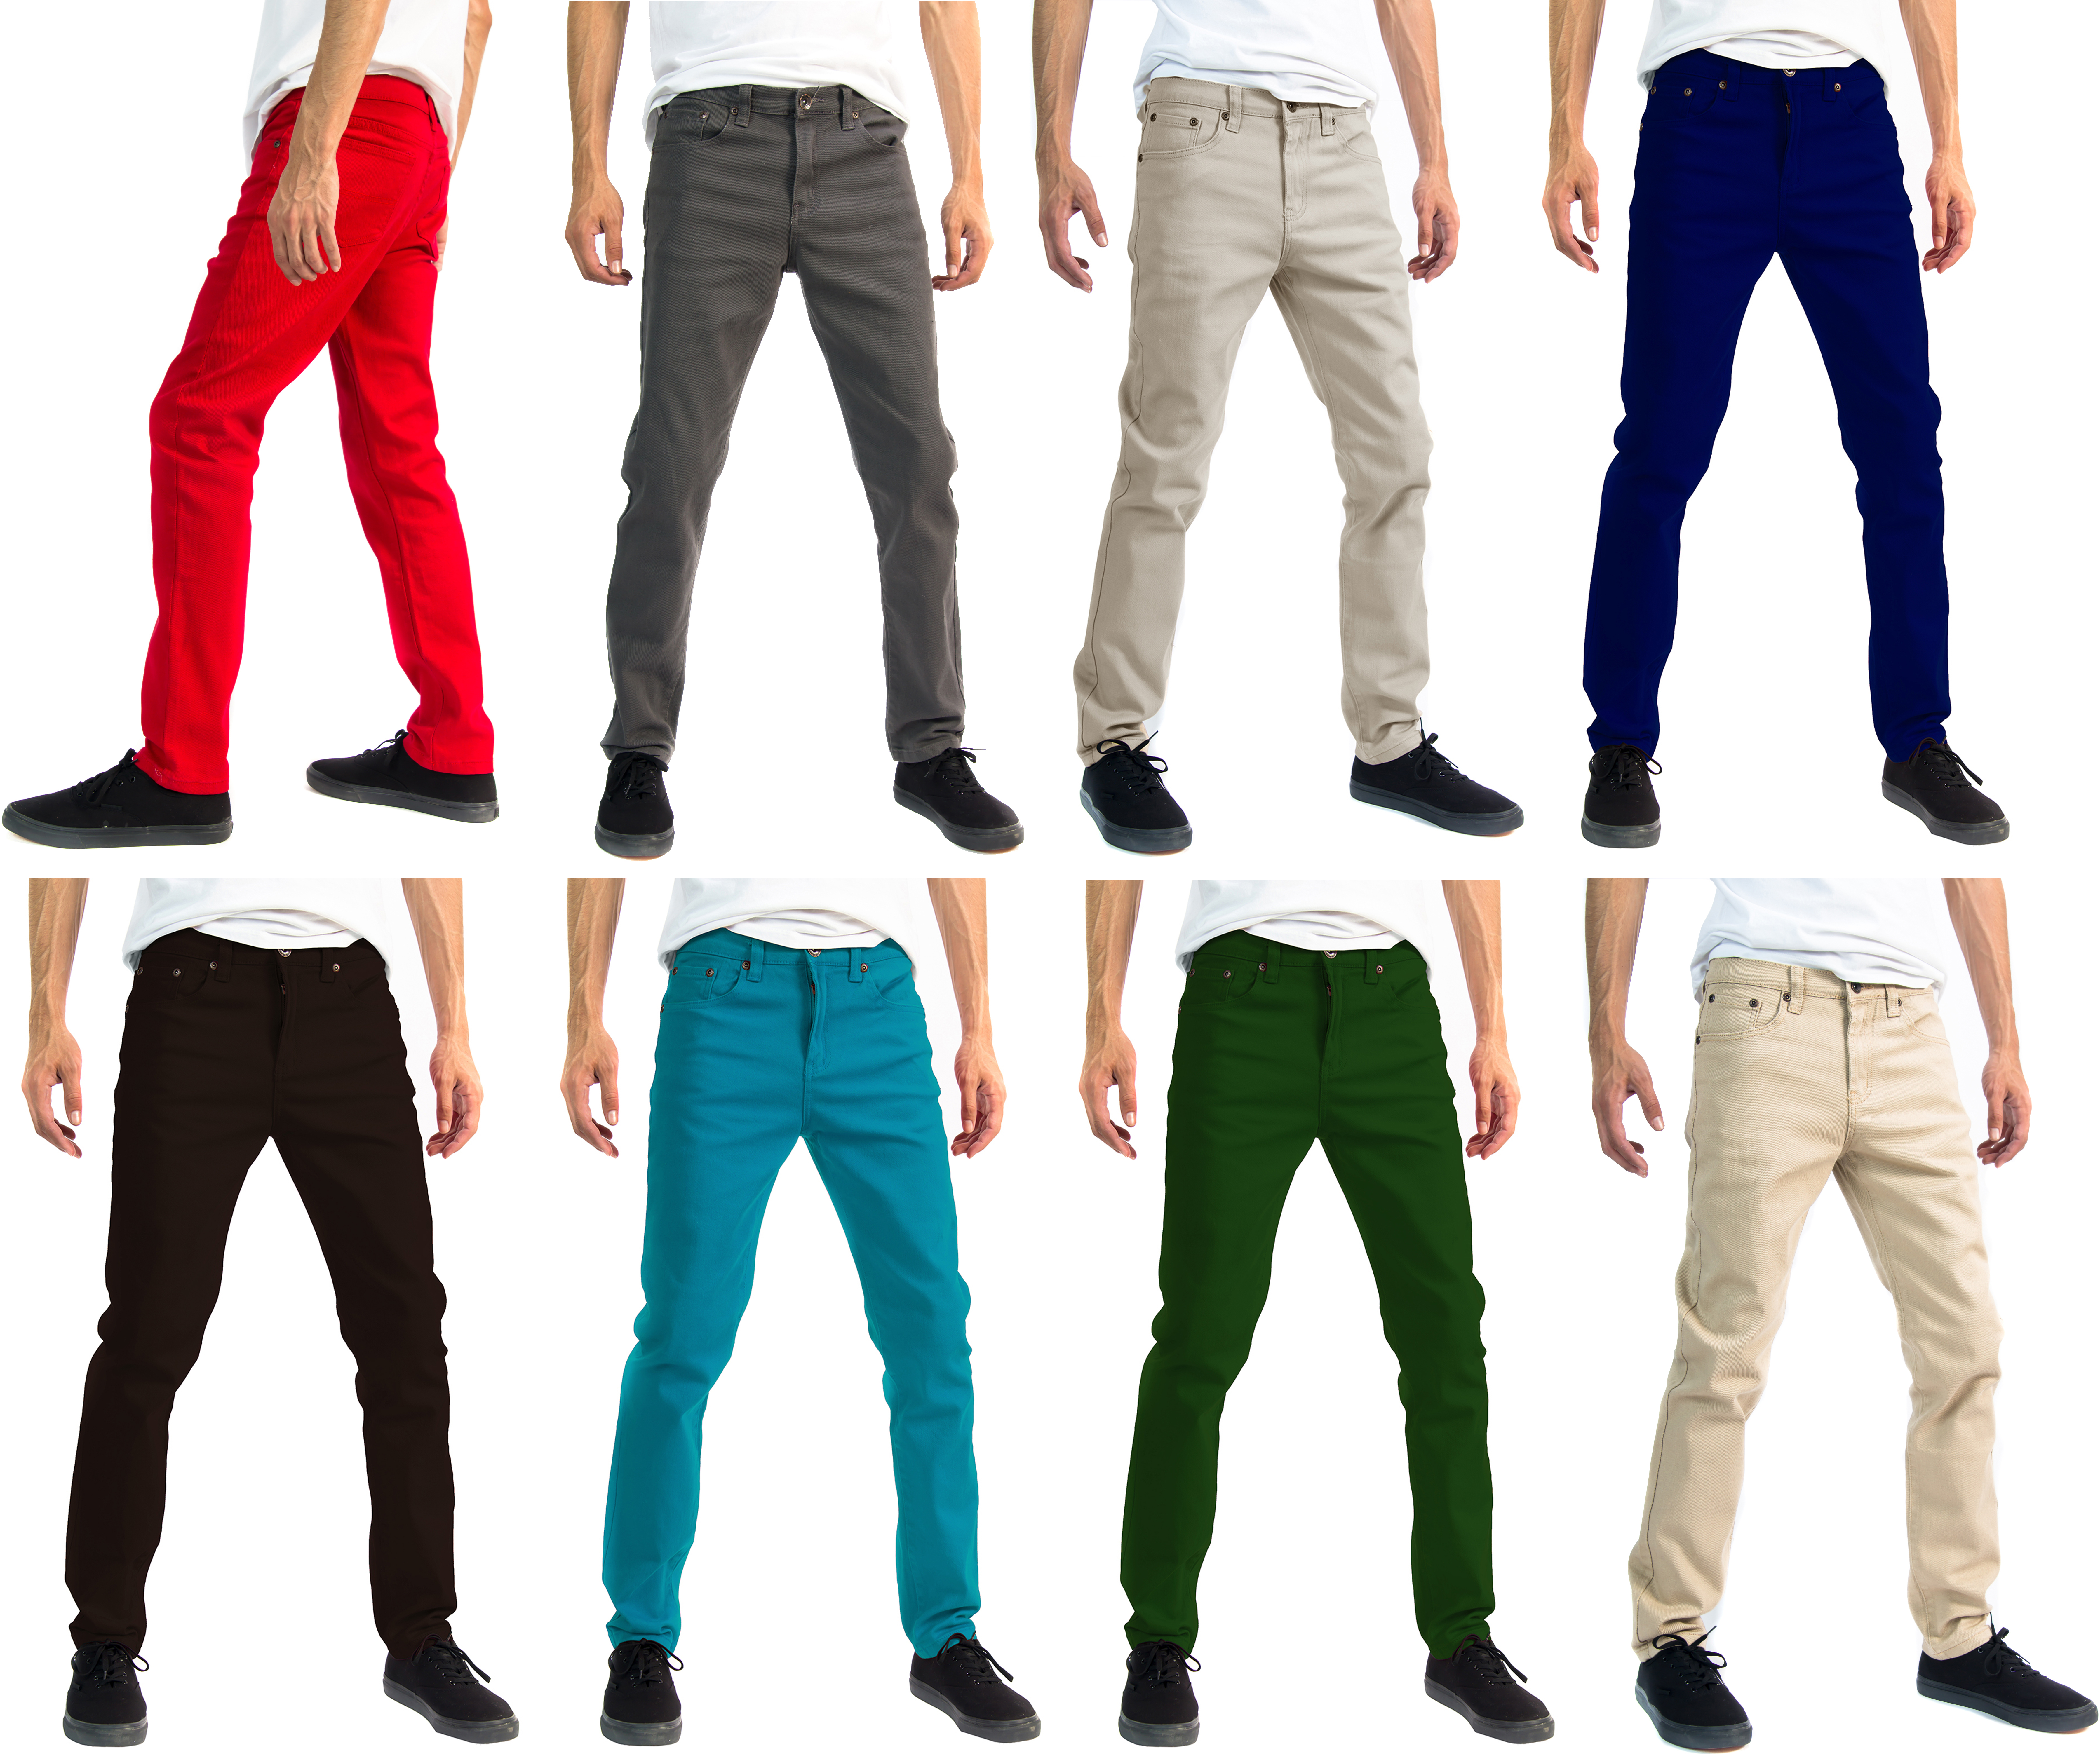 b7034d343df Slim through hip, thigh and leg. Stretch design for all day comfort.  Classic 5-Pocket Styling Zipper fly, button closure